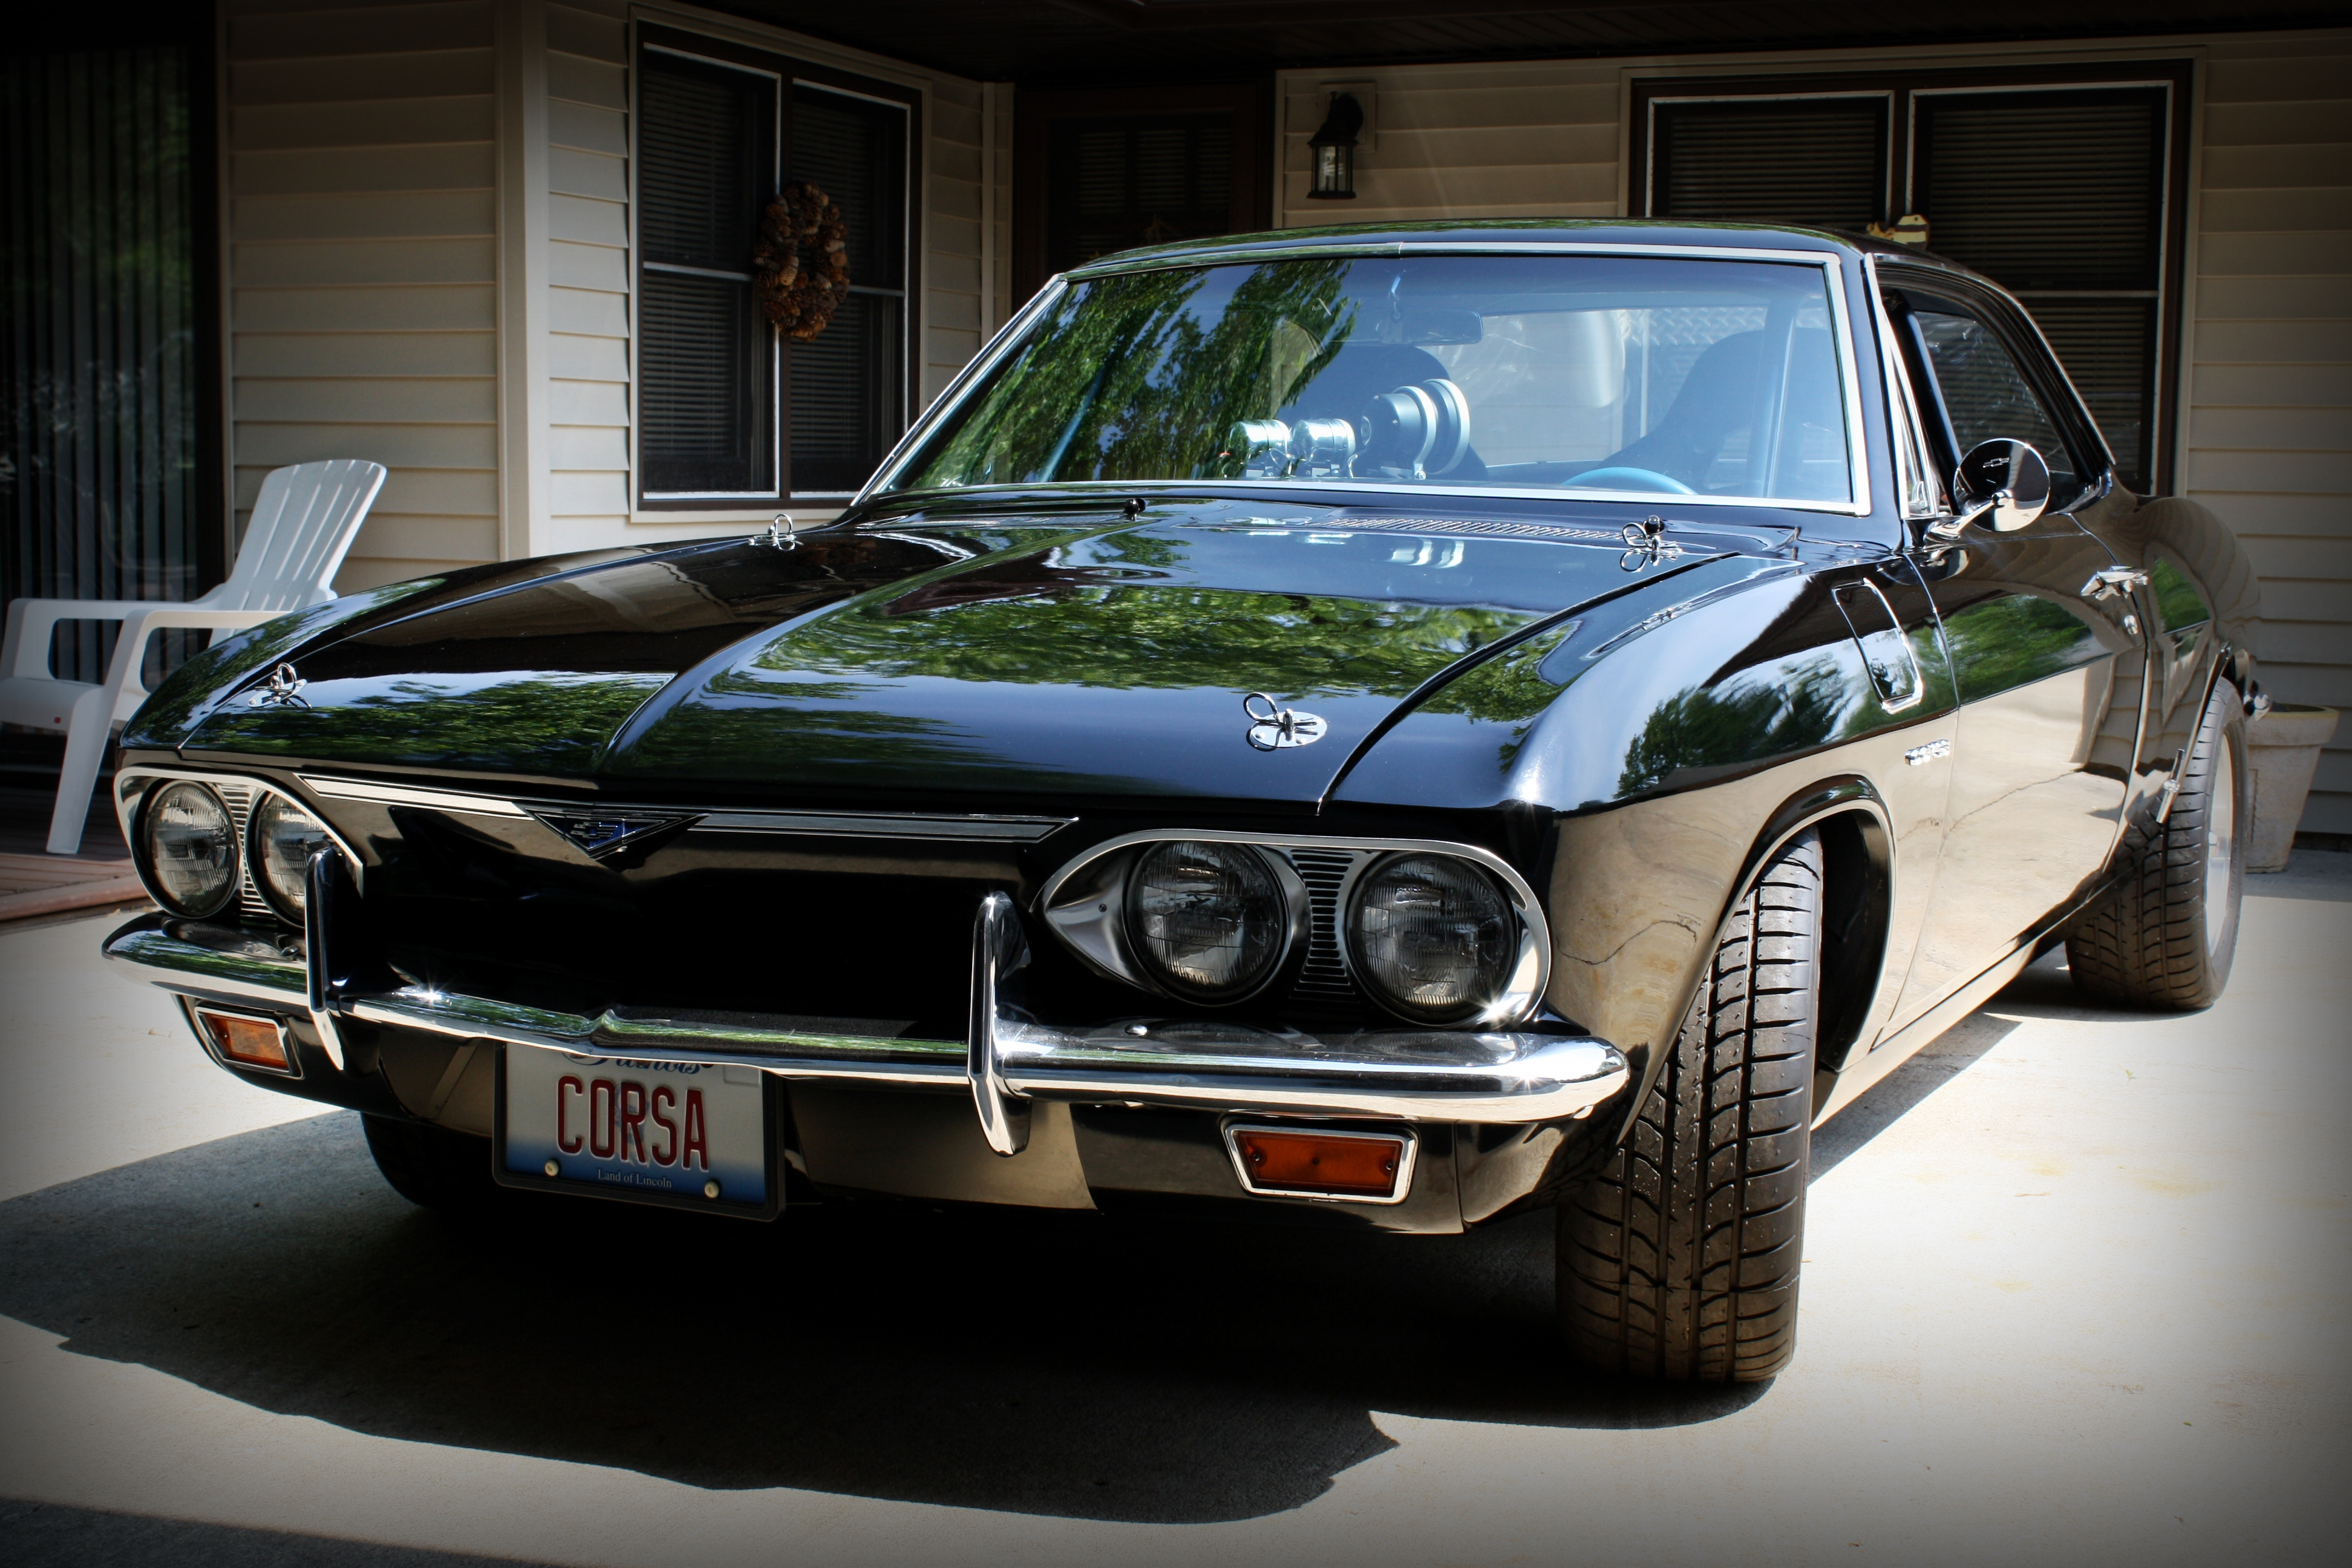 JKAII's 1965 Chevrolet Corvair